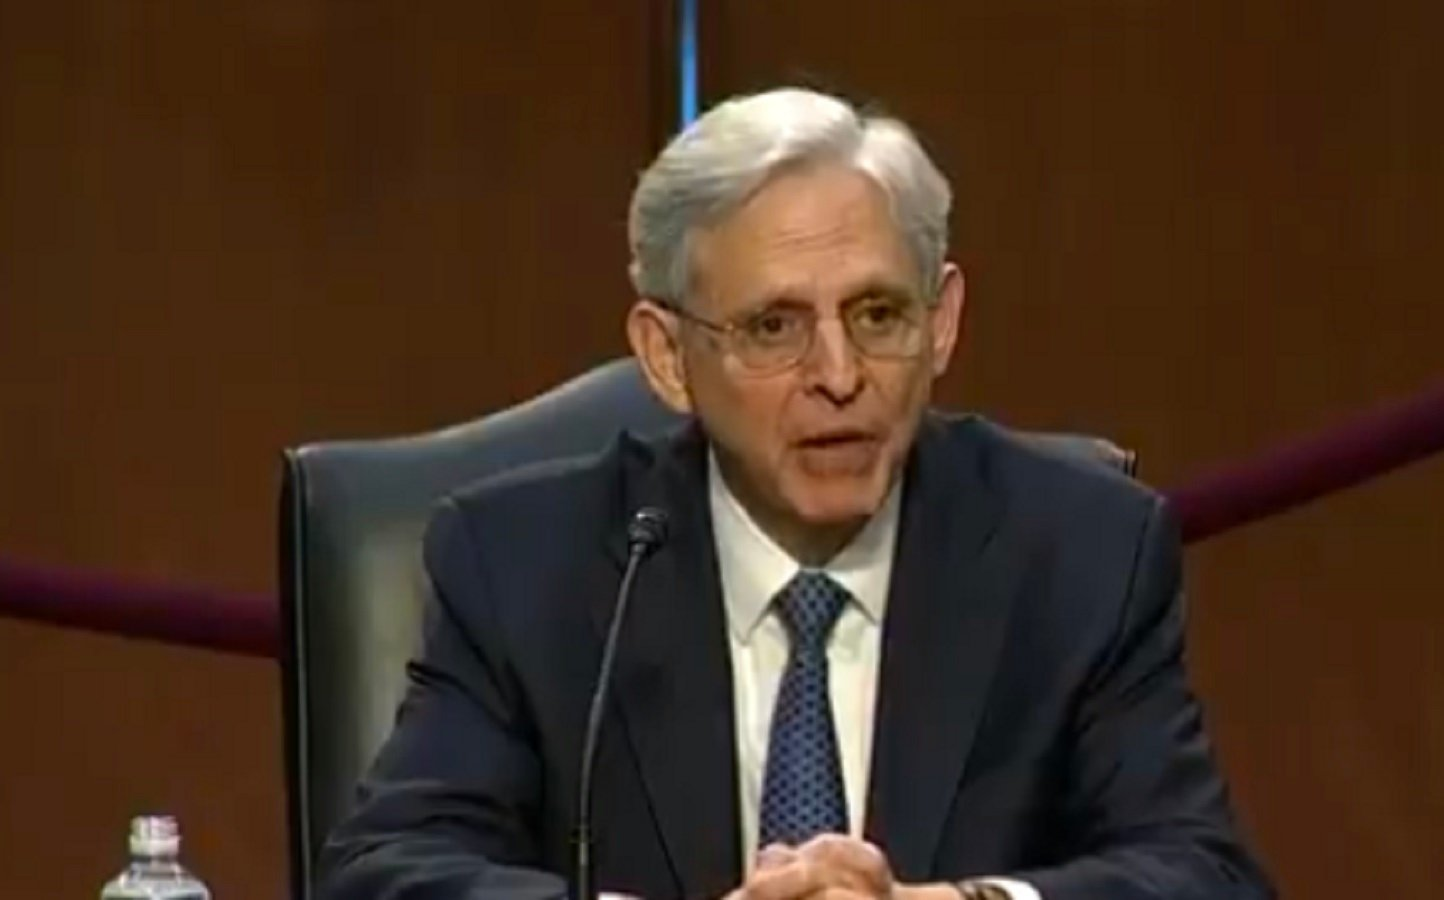 Biden AG Nominee Merrick Garland Refuses to Call Illegally Crossing the Border a Crime